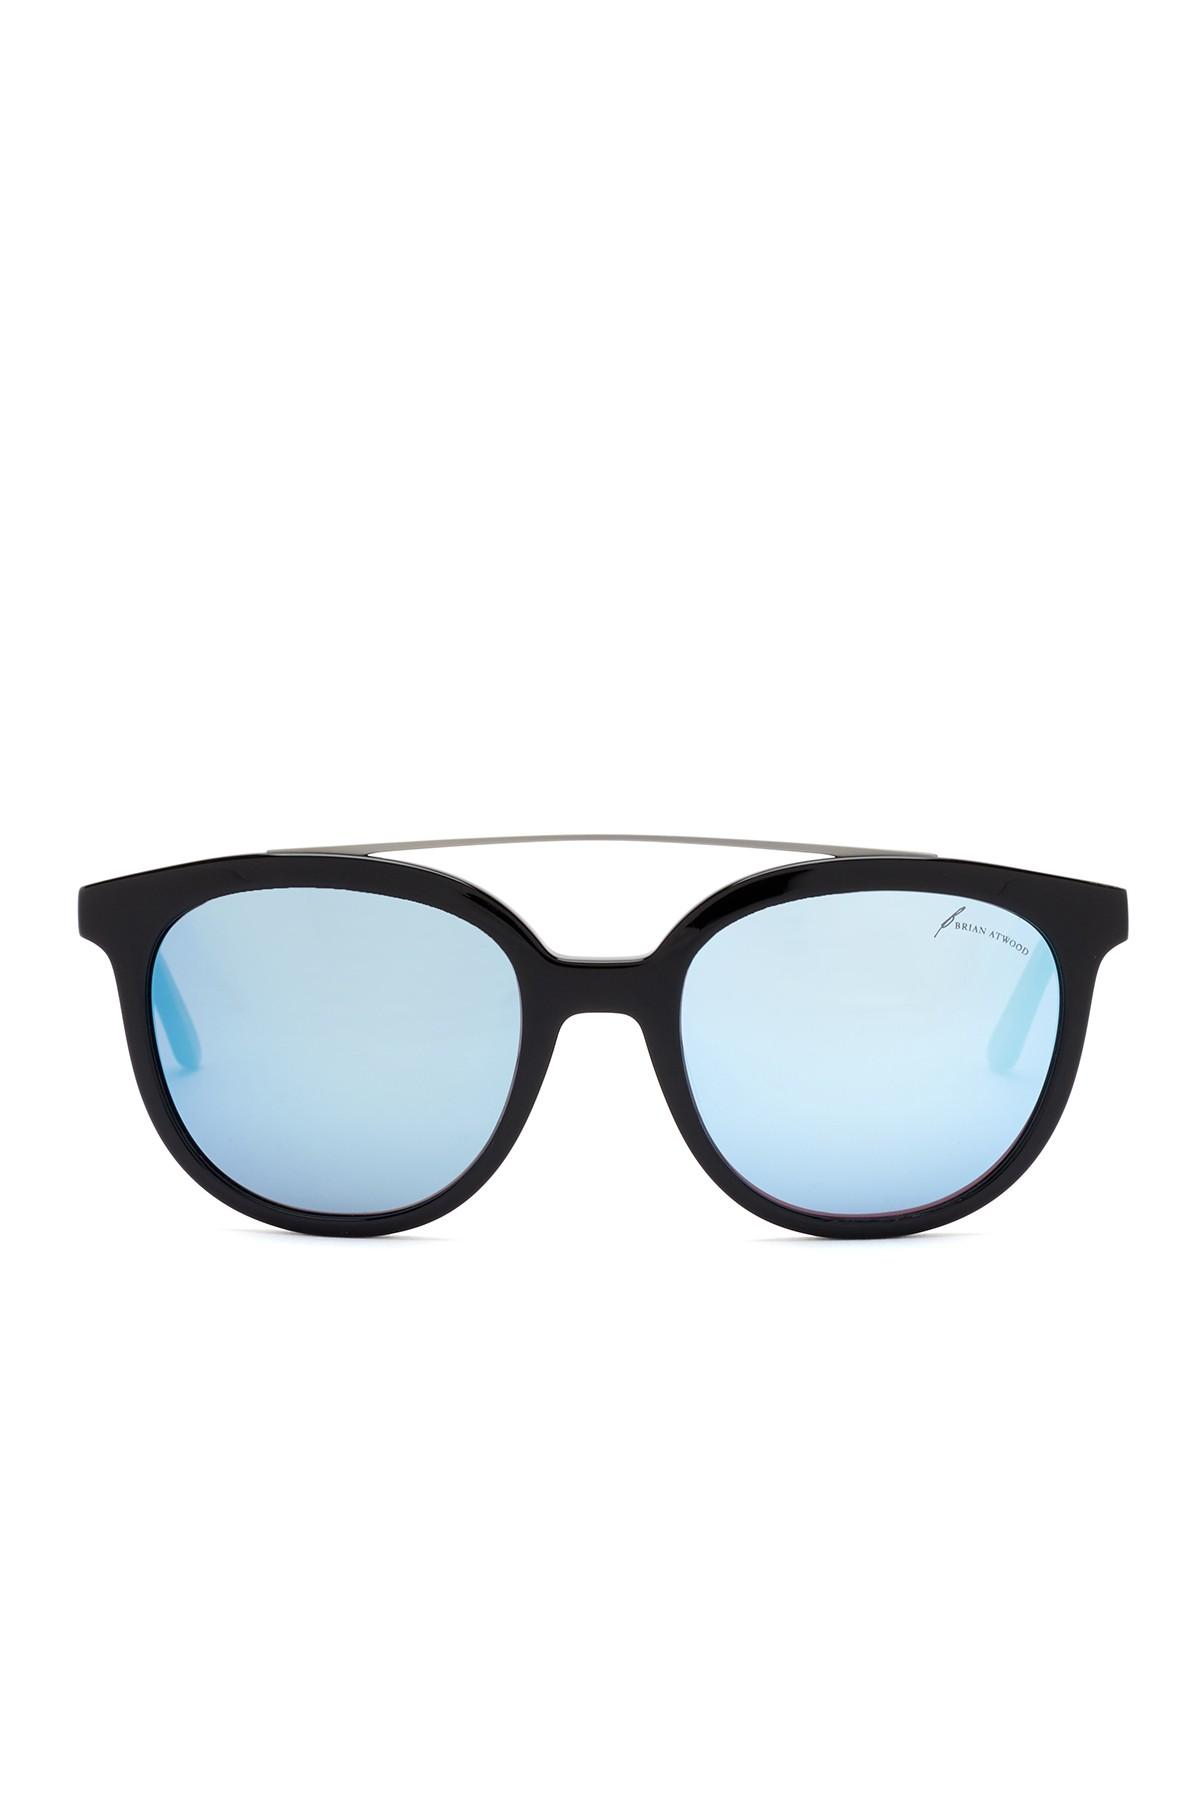 09322dc1c11 Lyst - B Brian Atwood Women s Acetate Round With Metal Top ...